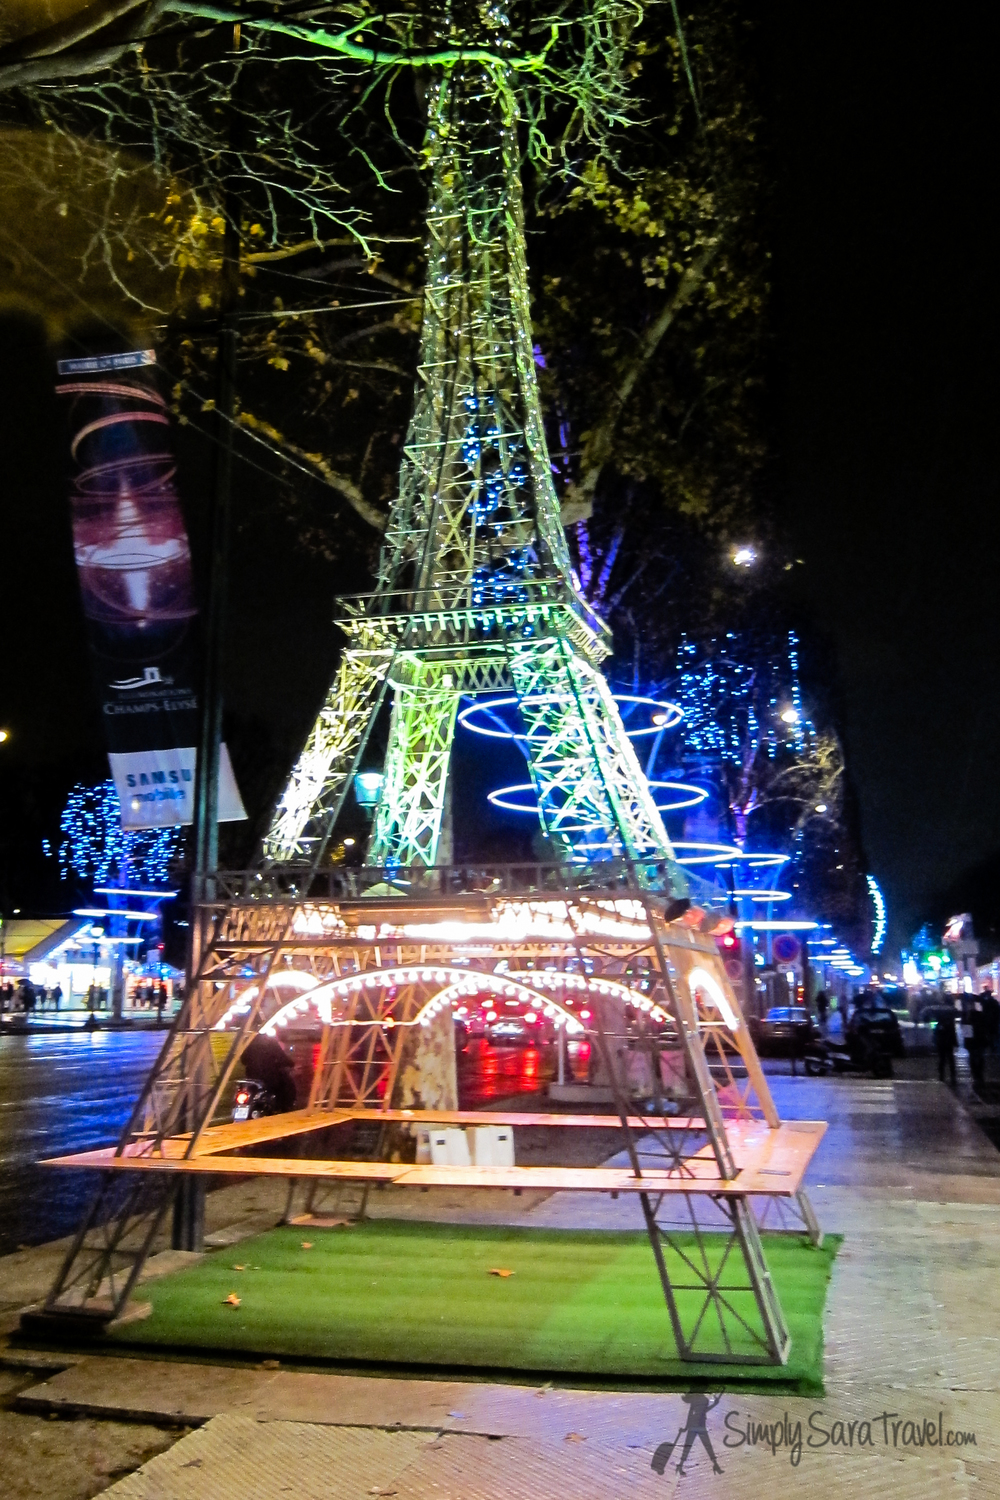 What the Christmas markets lack in Paris is made up for by the city's decorations and ice skating rinks (even an ice skating rink on the first level of the Eiffel Tower!)